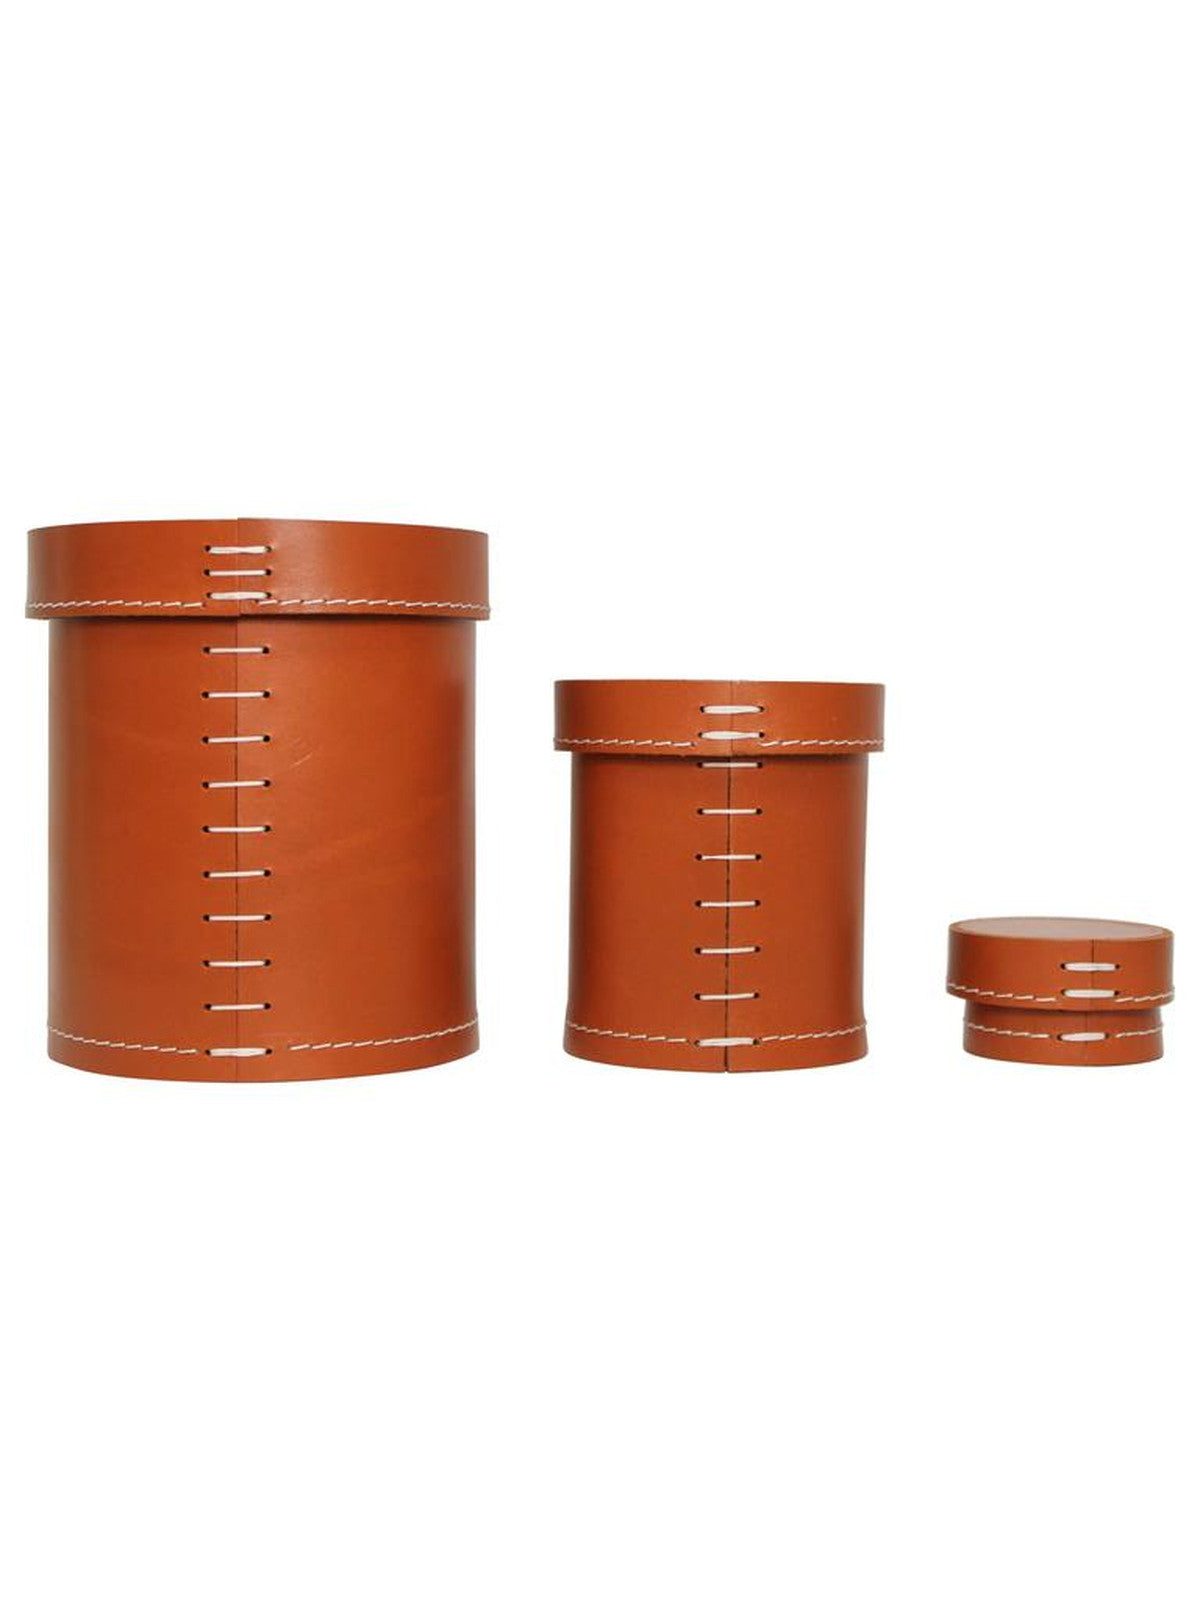 Arte and Cuoio Leather Vessels